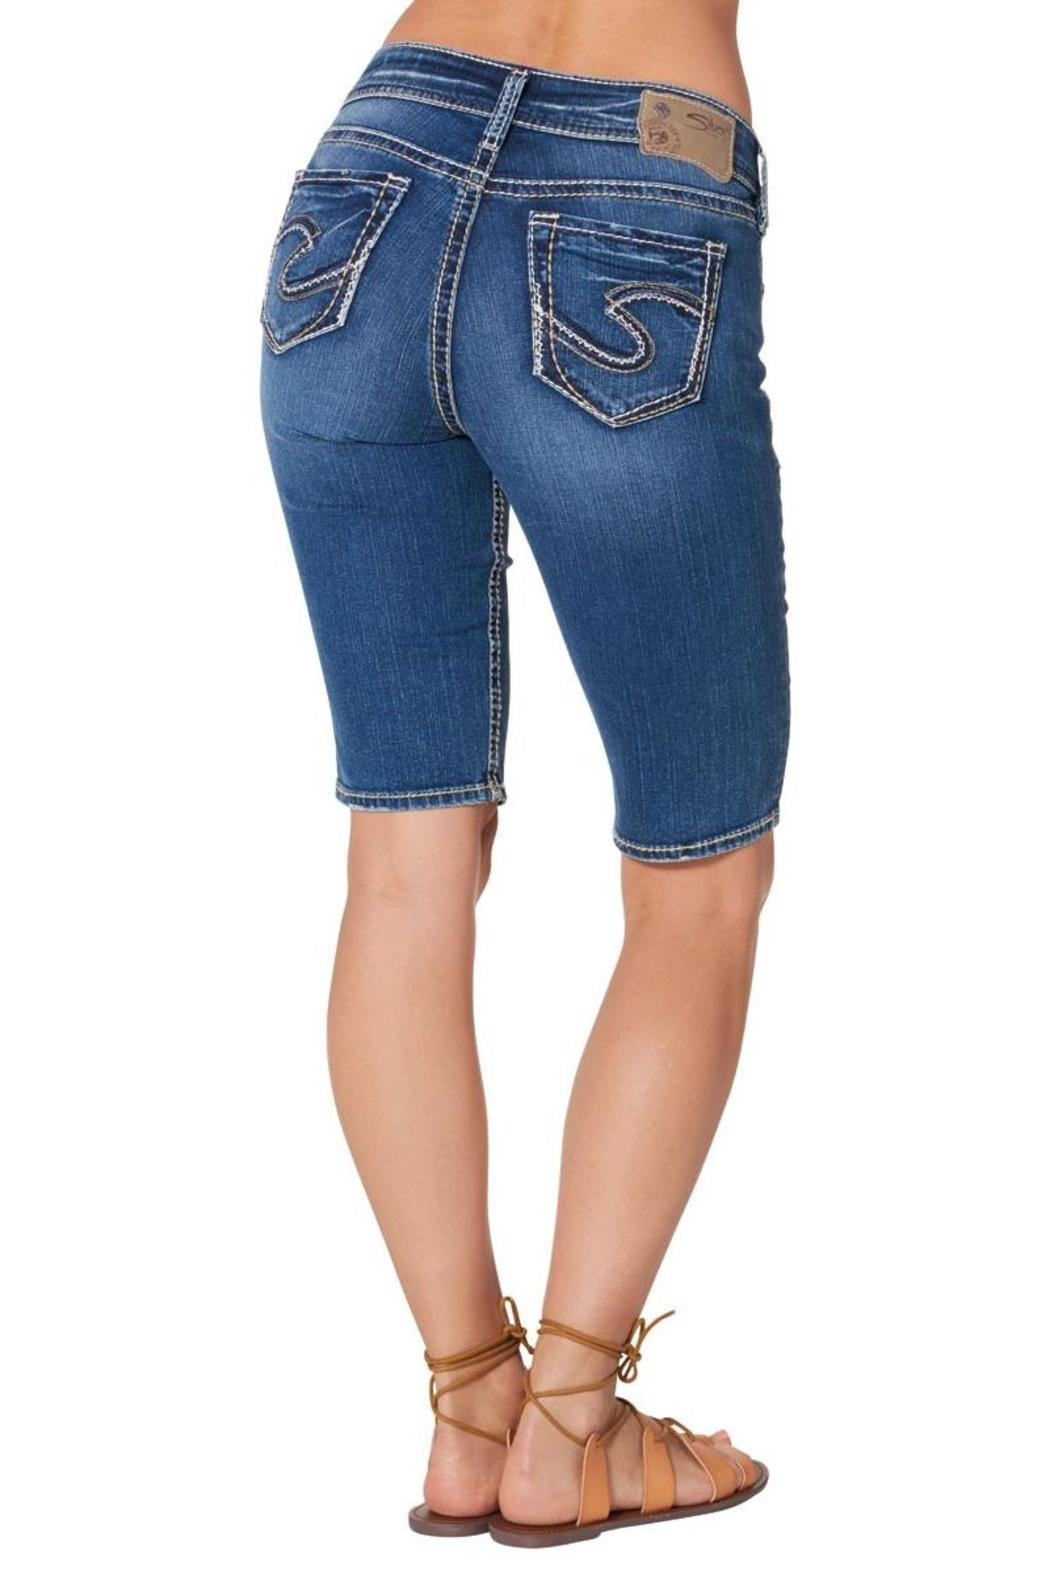 Silver Jeans Co. Suki Bermuda Short - Front Cropped Image